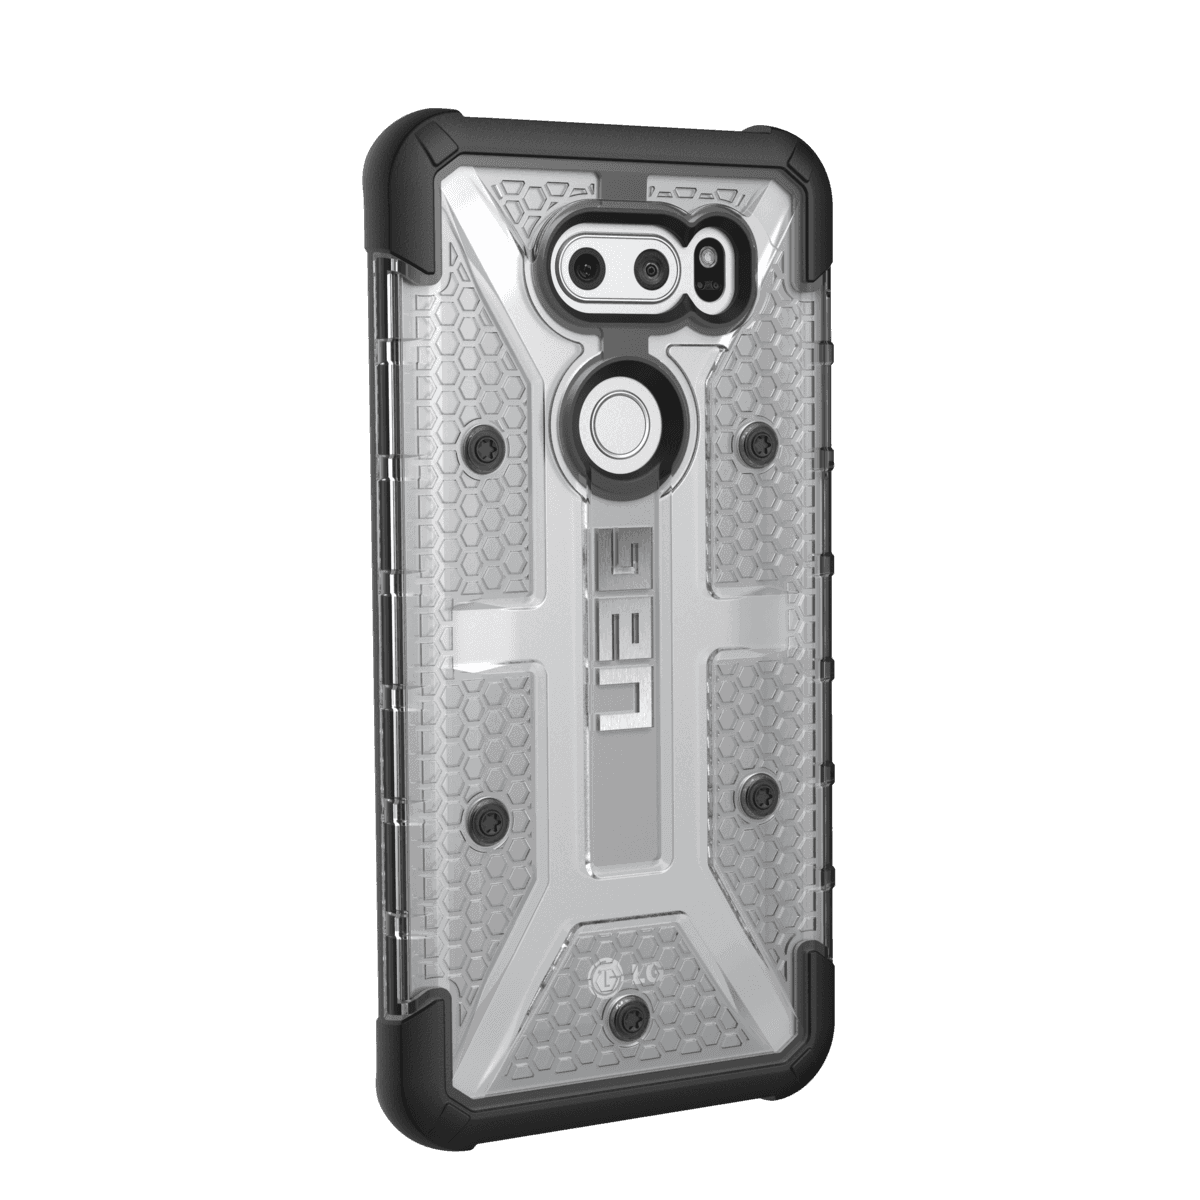 Galaxy s6 cases shop samsung cases online uag urban armor gear - Urban Armor Gear Launches Plasma Series Case For The Lg V30 Androidheadlines Com